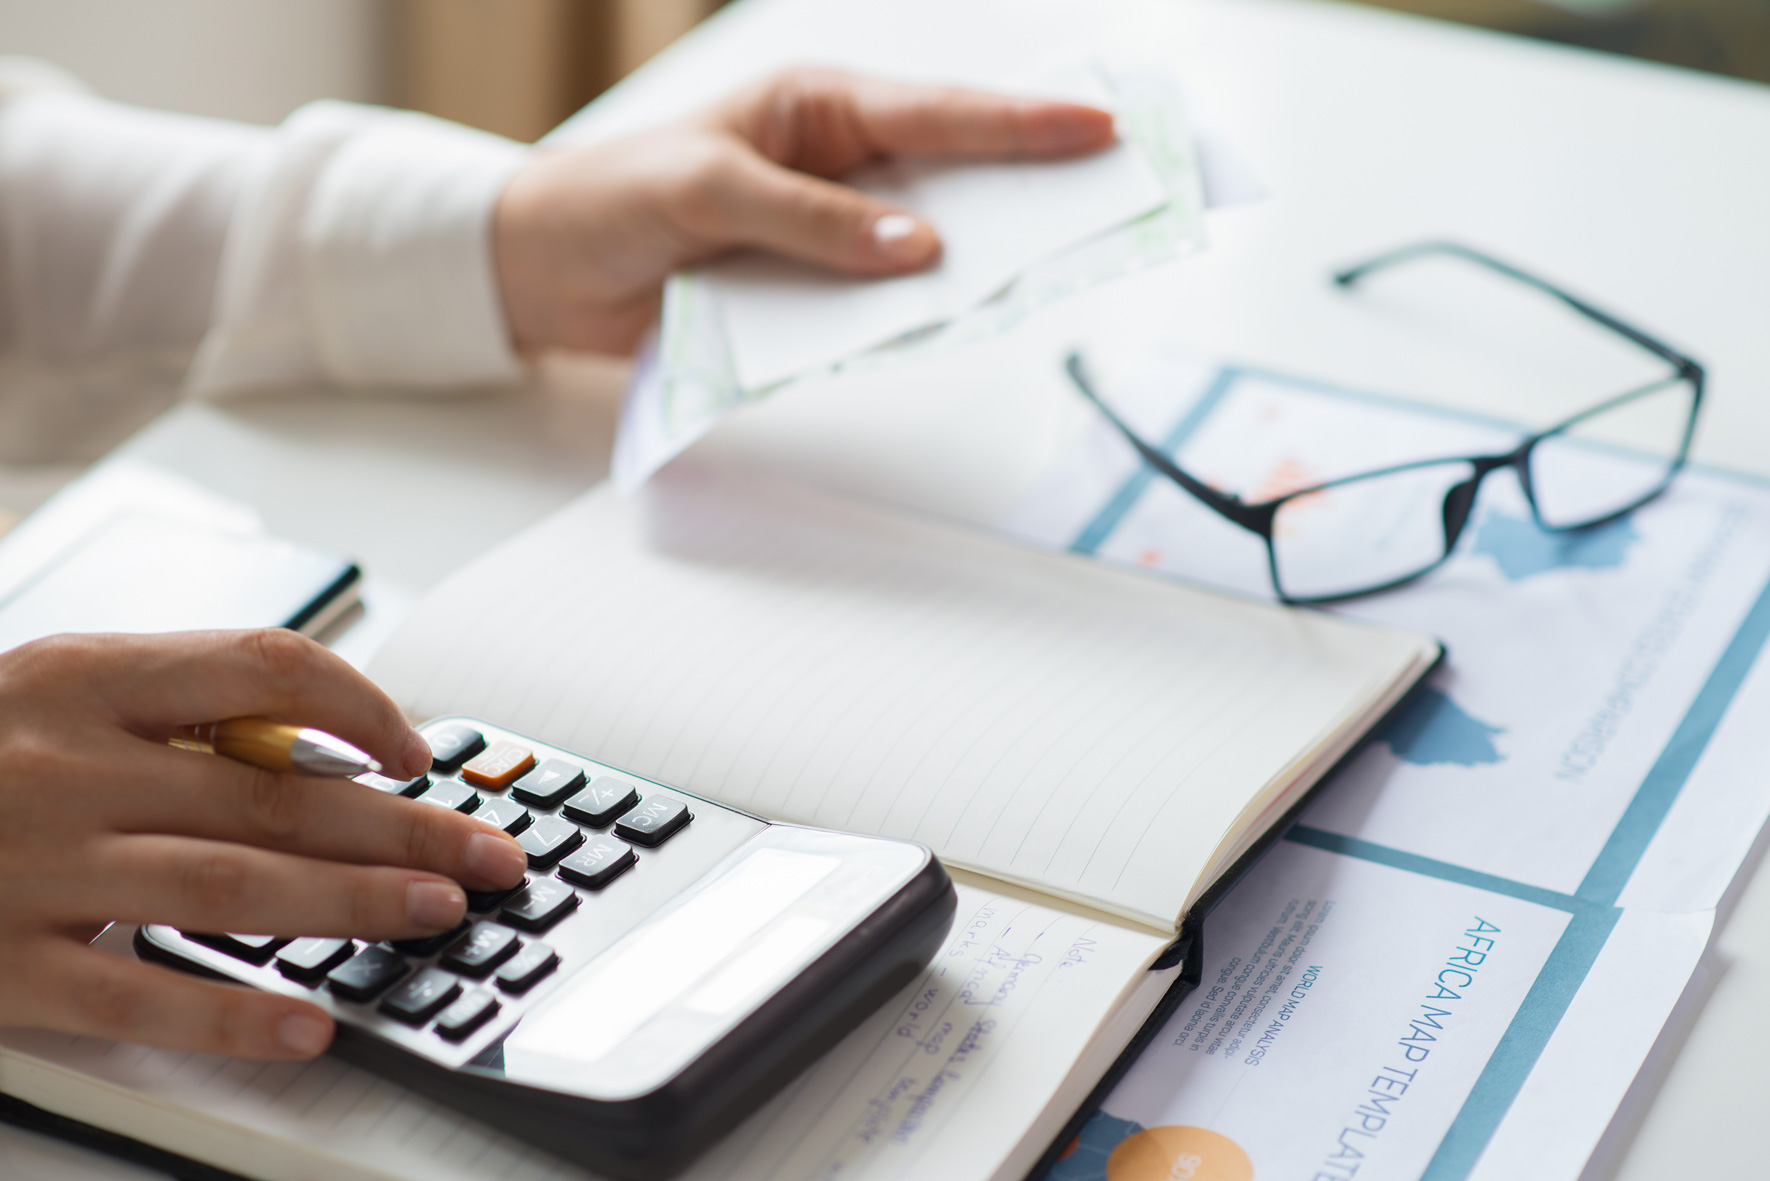 Will Accountants Be Replaced By AI Accounting Software